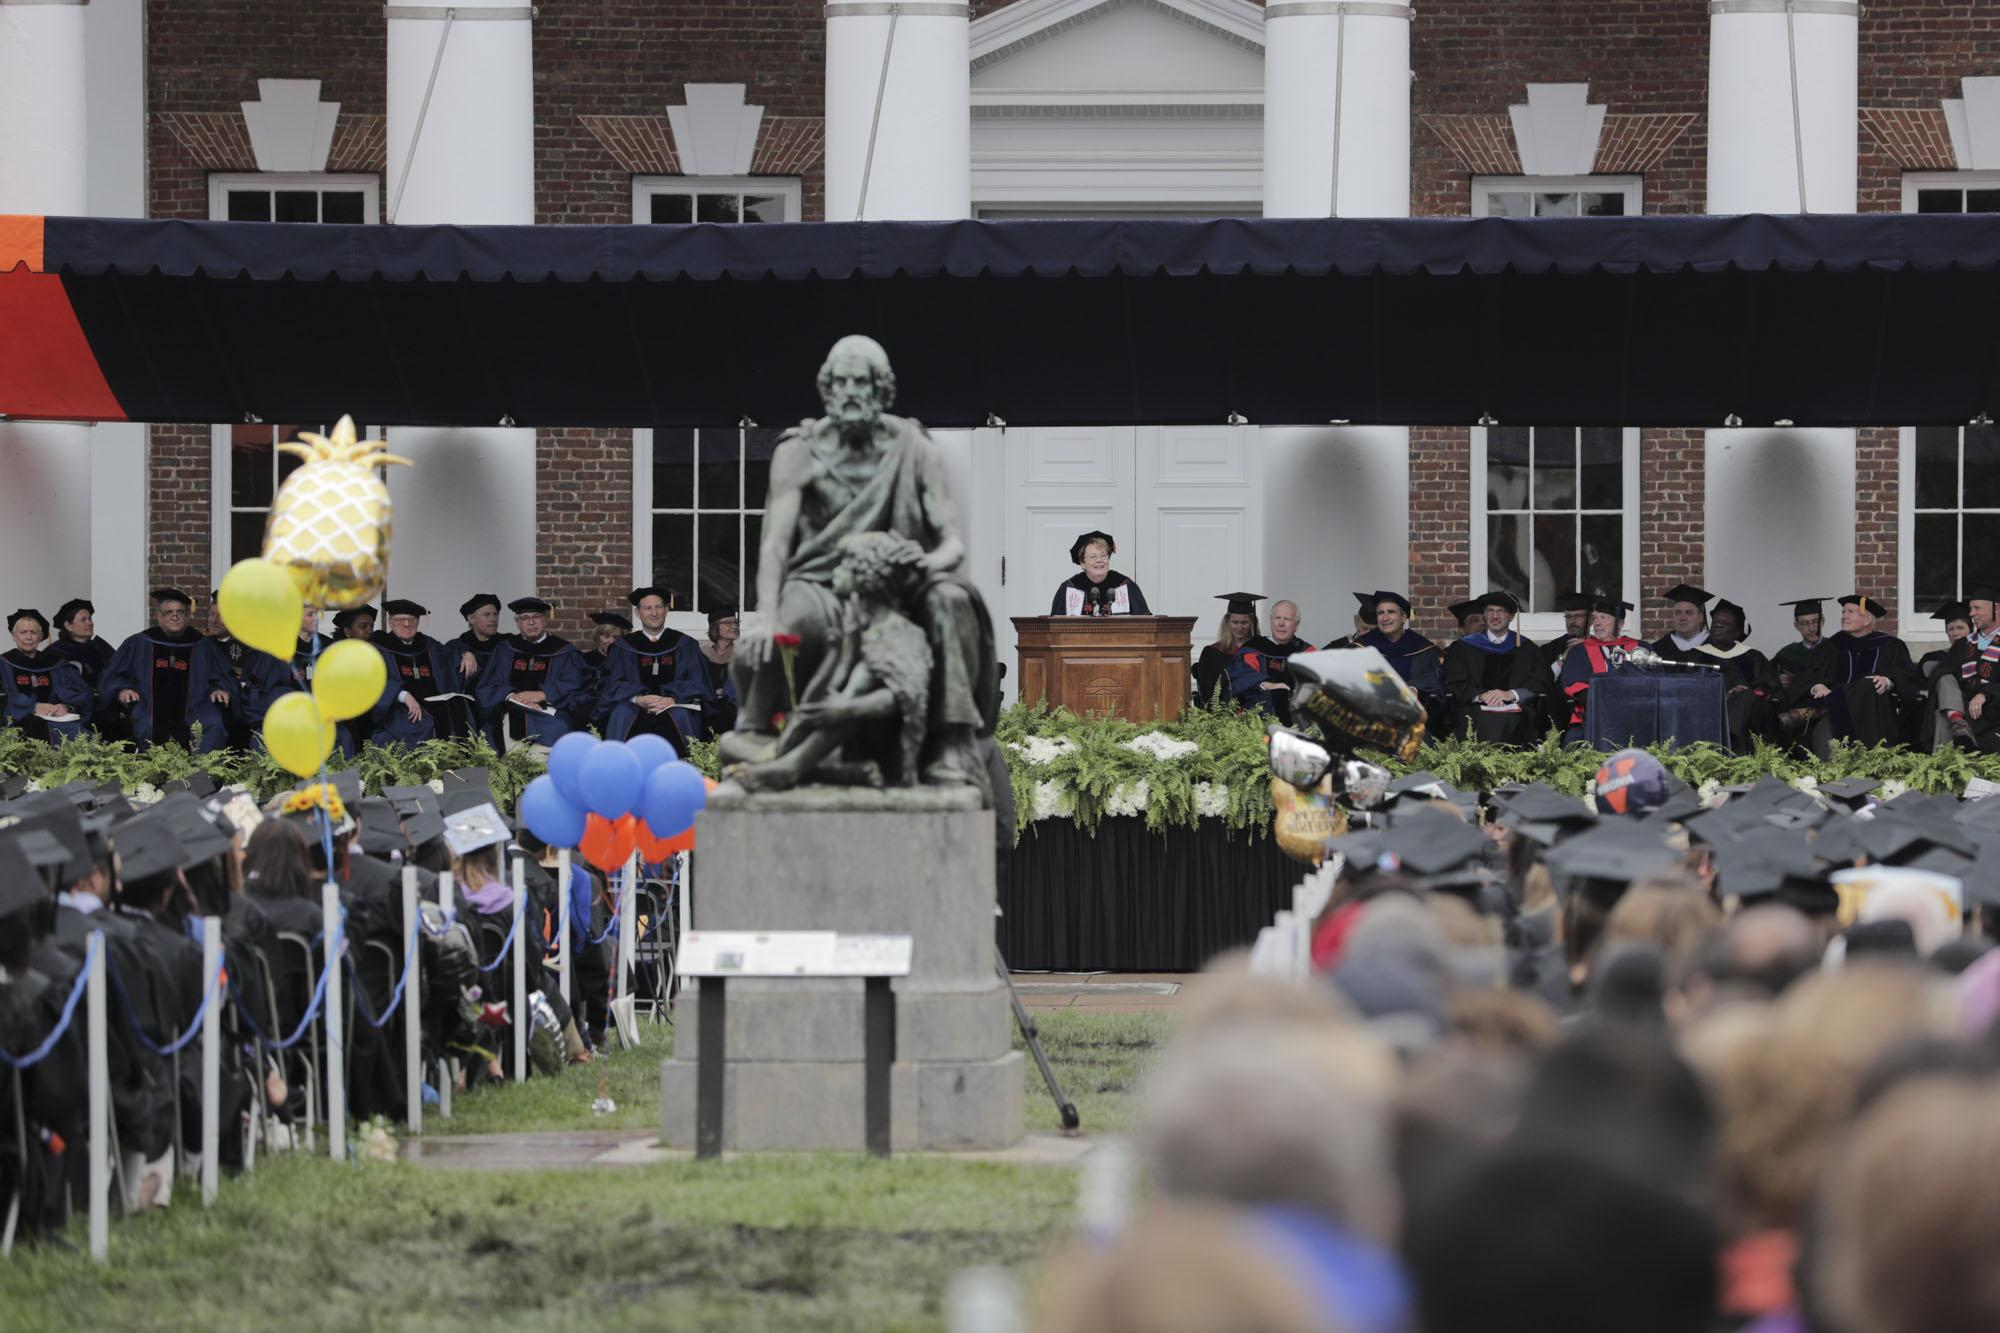 Despite Drizzle, Joy Abounds in the First Graduation Ceremony of the Weekend